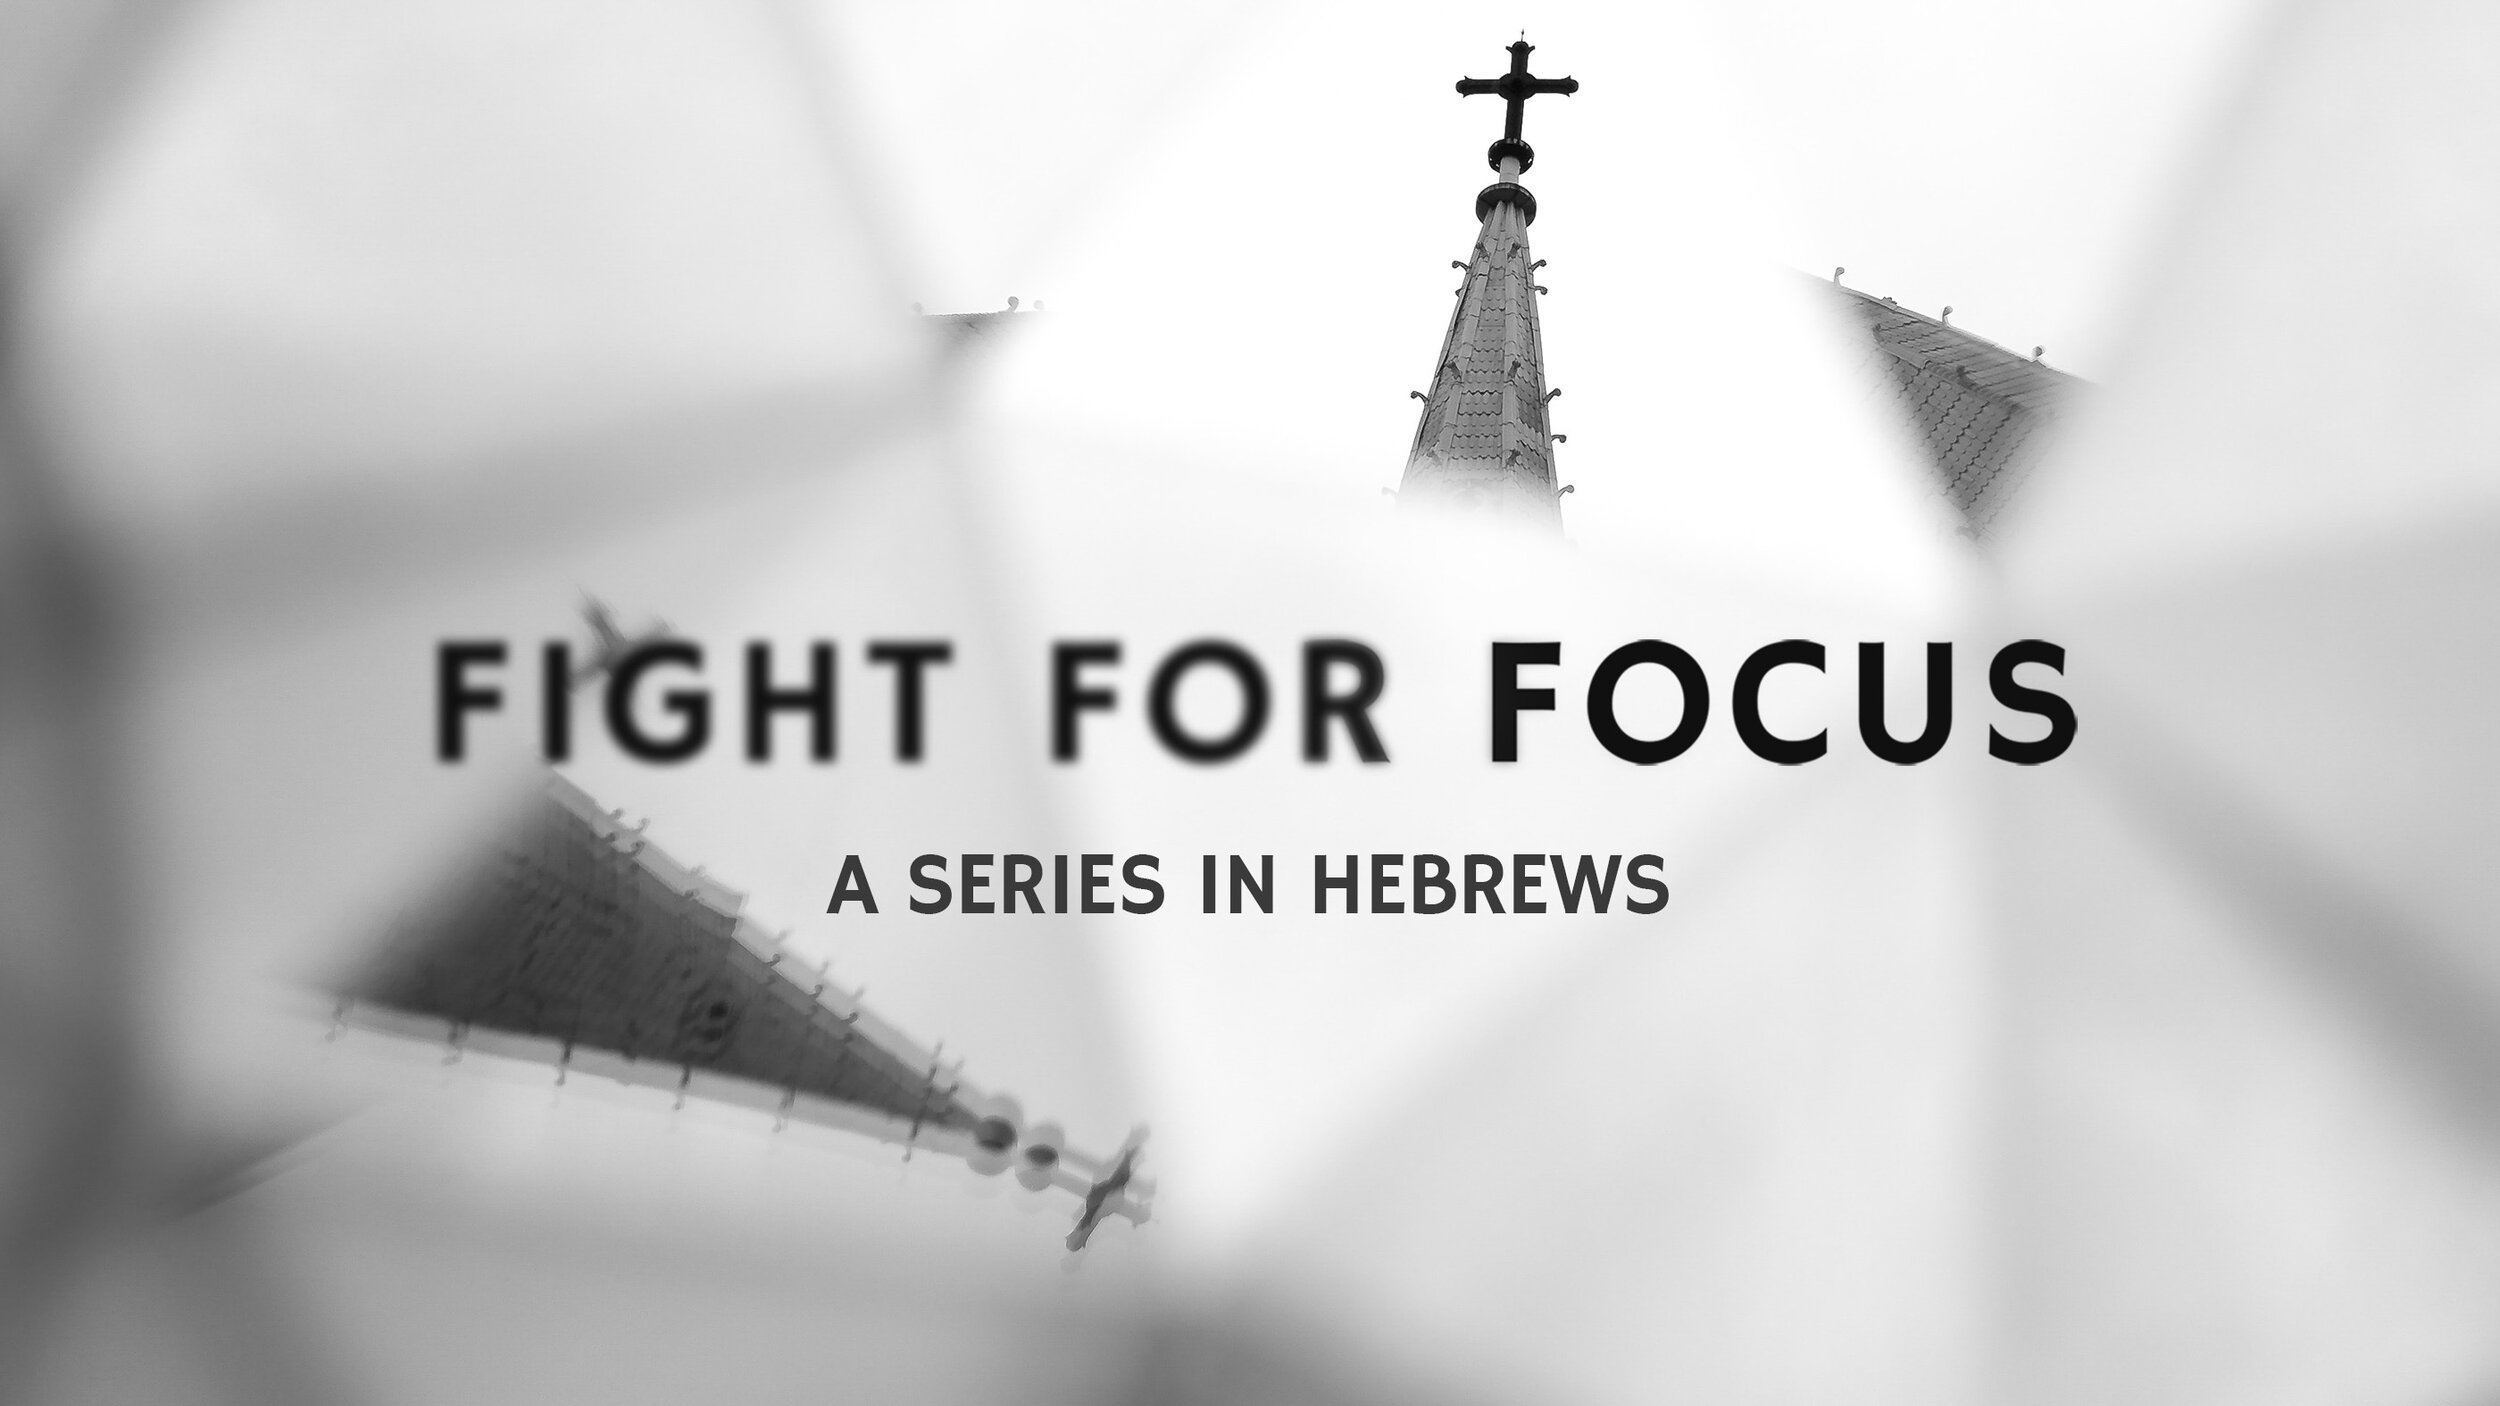 Fight For Focus - with subtitle.jpg